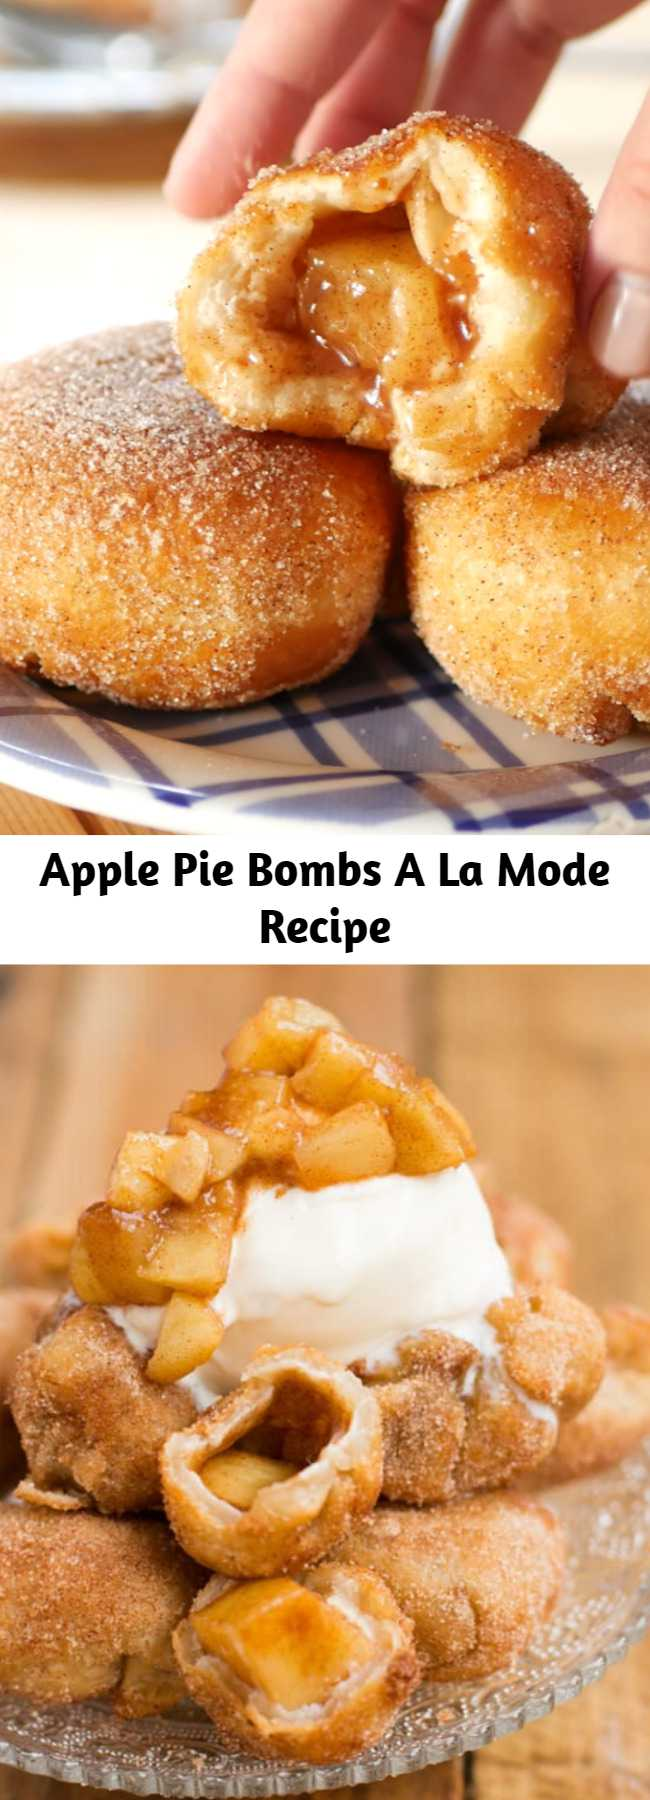 Apple Pie Bombs A La Mode Recipe - It's not fall until you've made apple pie bombs a la mode with creamy vanilla ice cream and those glazed apples all over the tops. I love fall dessert recipes!